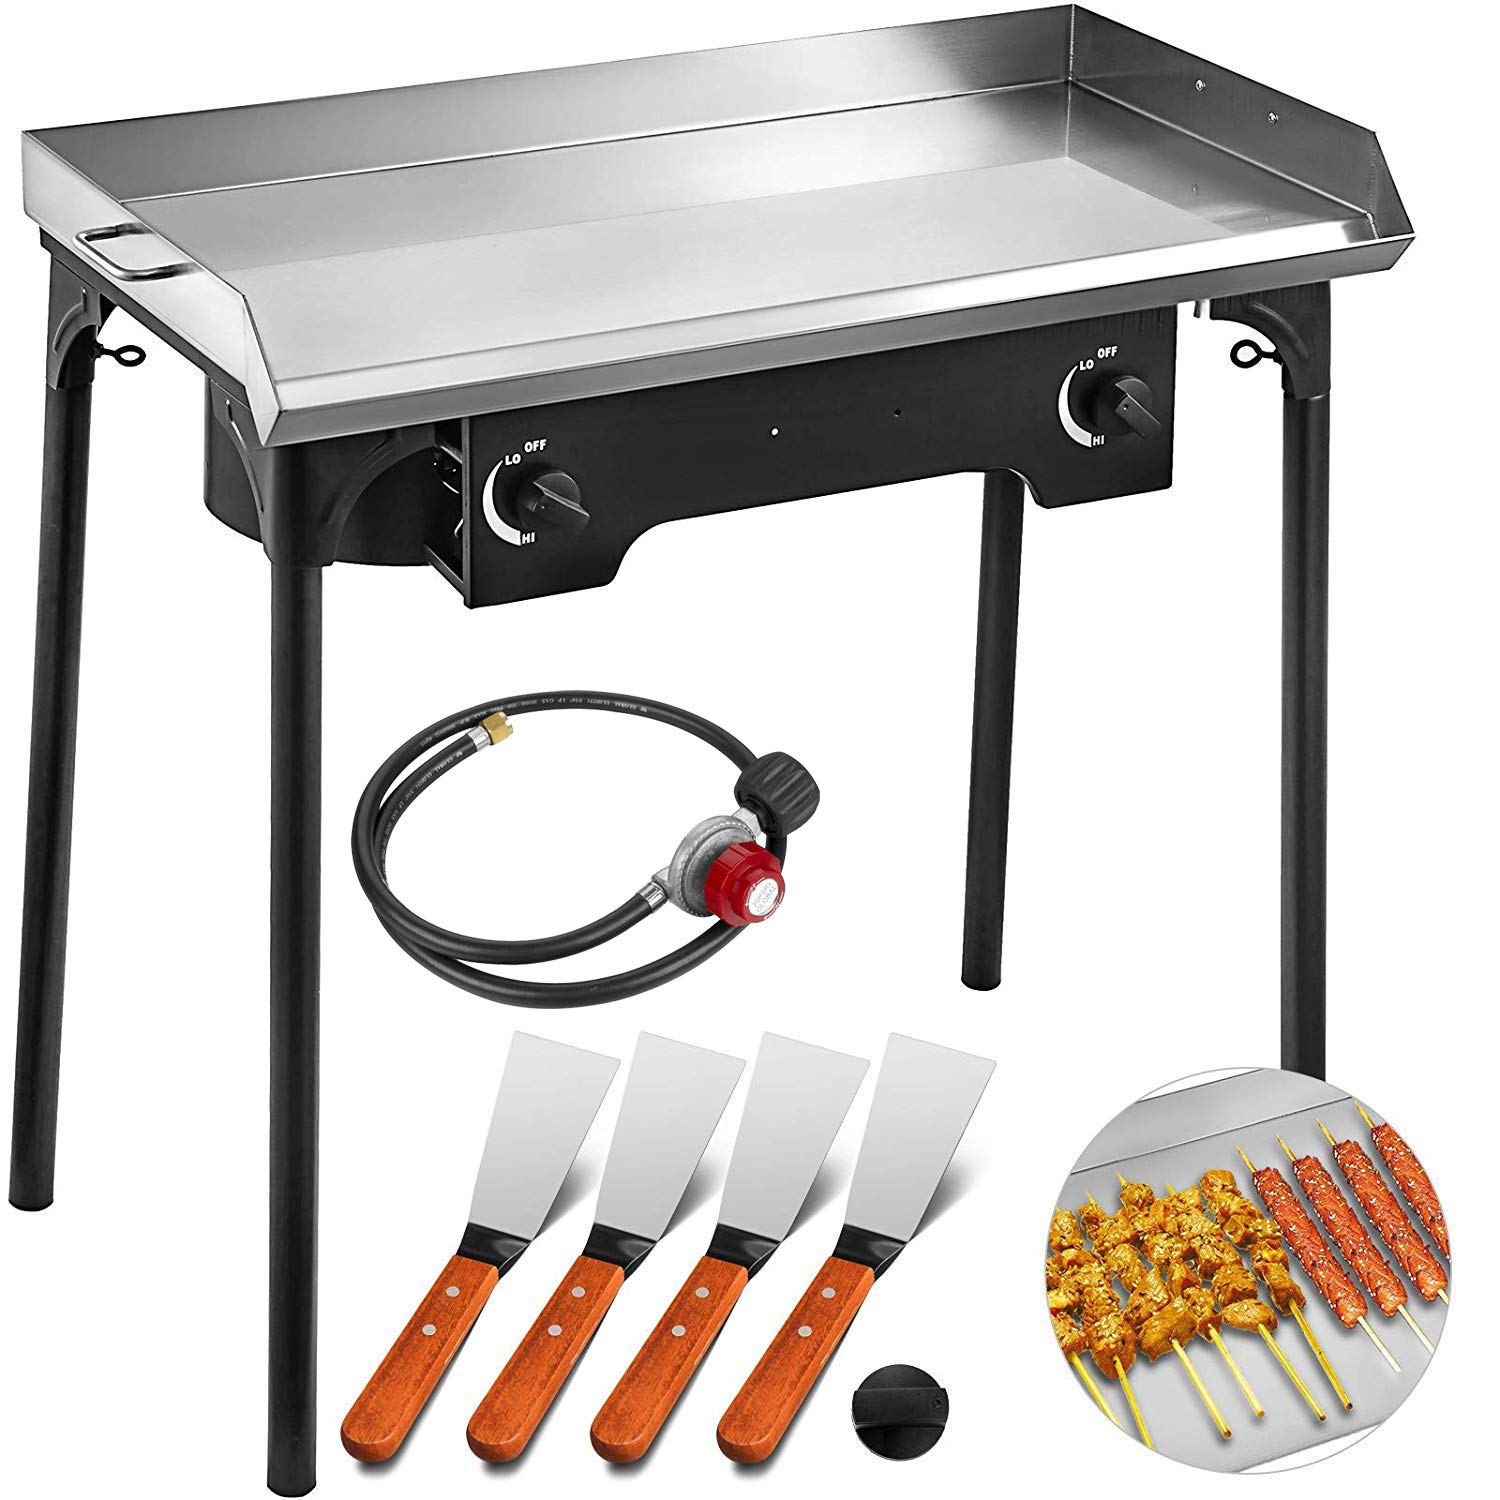 VEVOR Flat Top Griddle Grill & Propane Fueled 2 Burners Stove Stainless Steel with 4 Spatula & Scraper, 32'' x 17'' by VEVOR